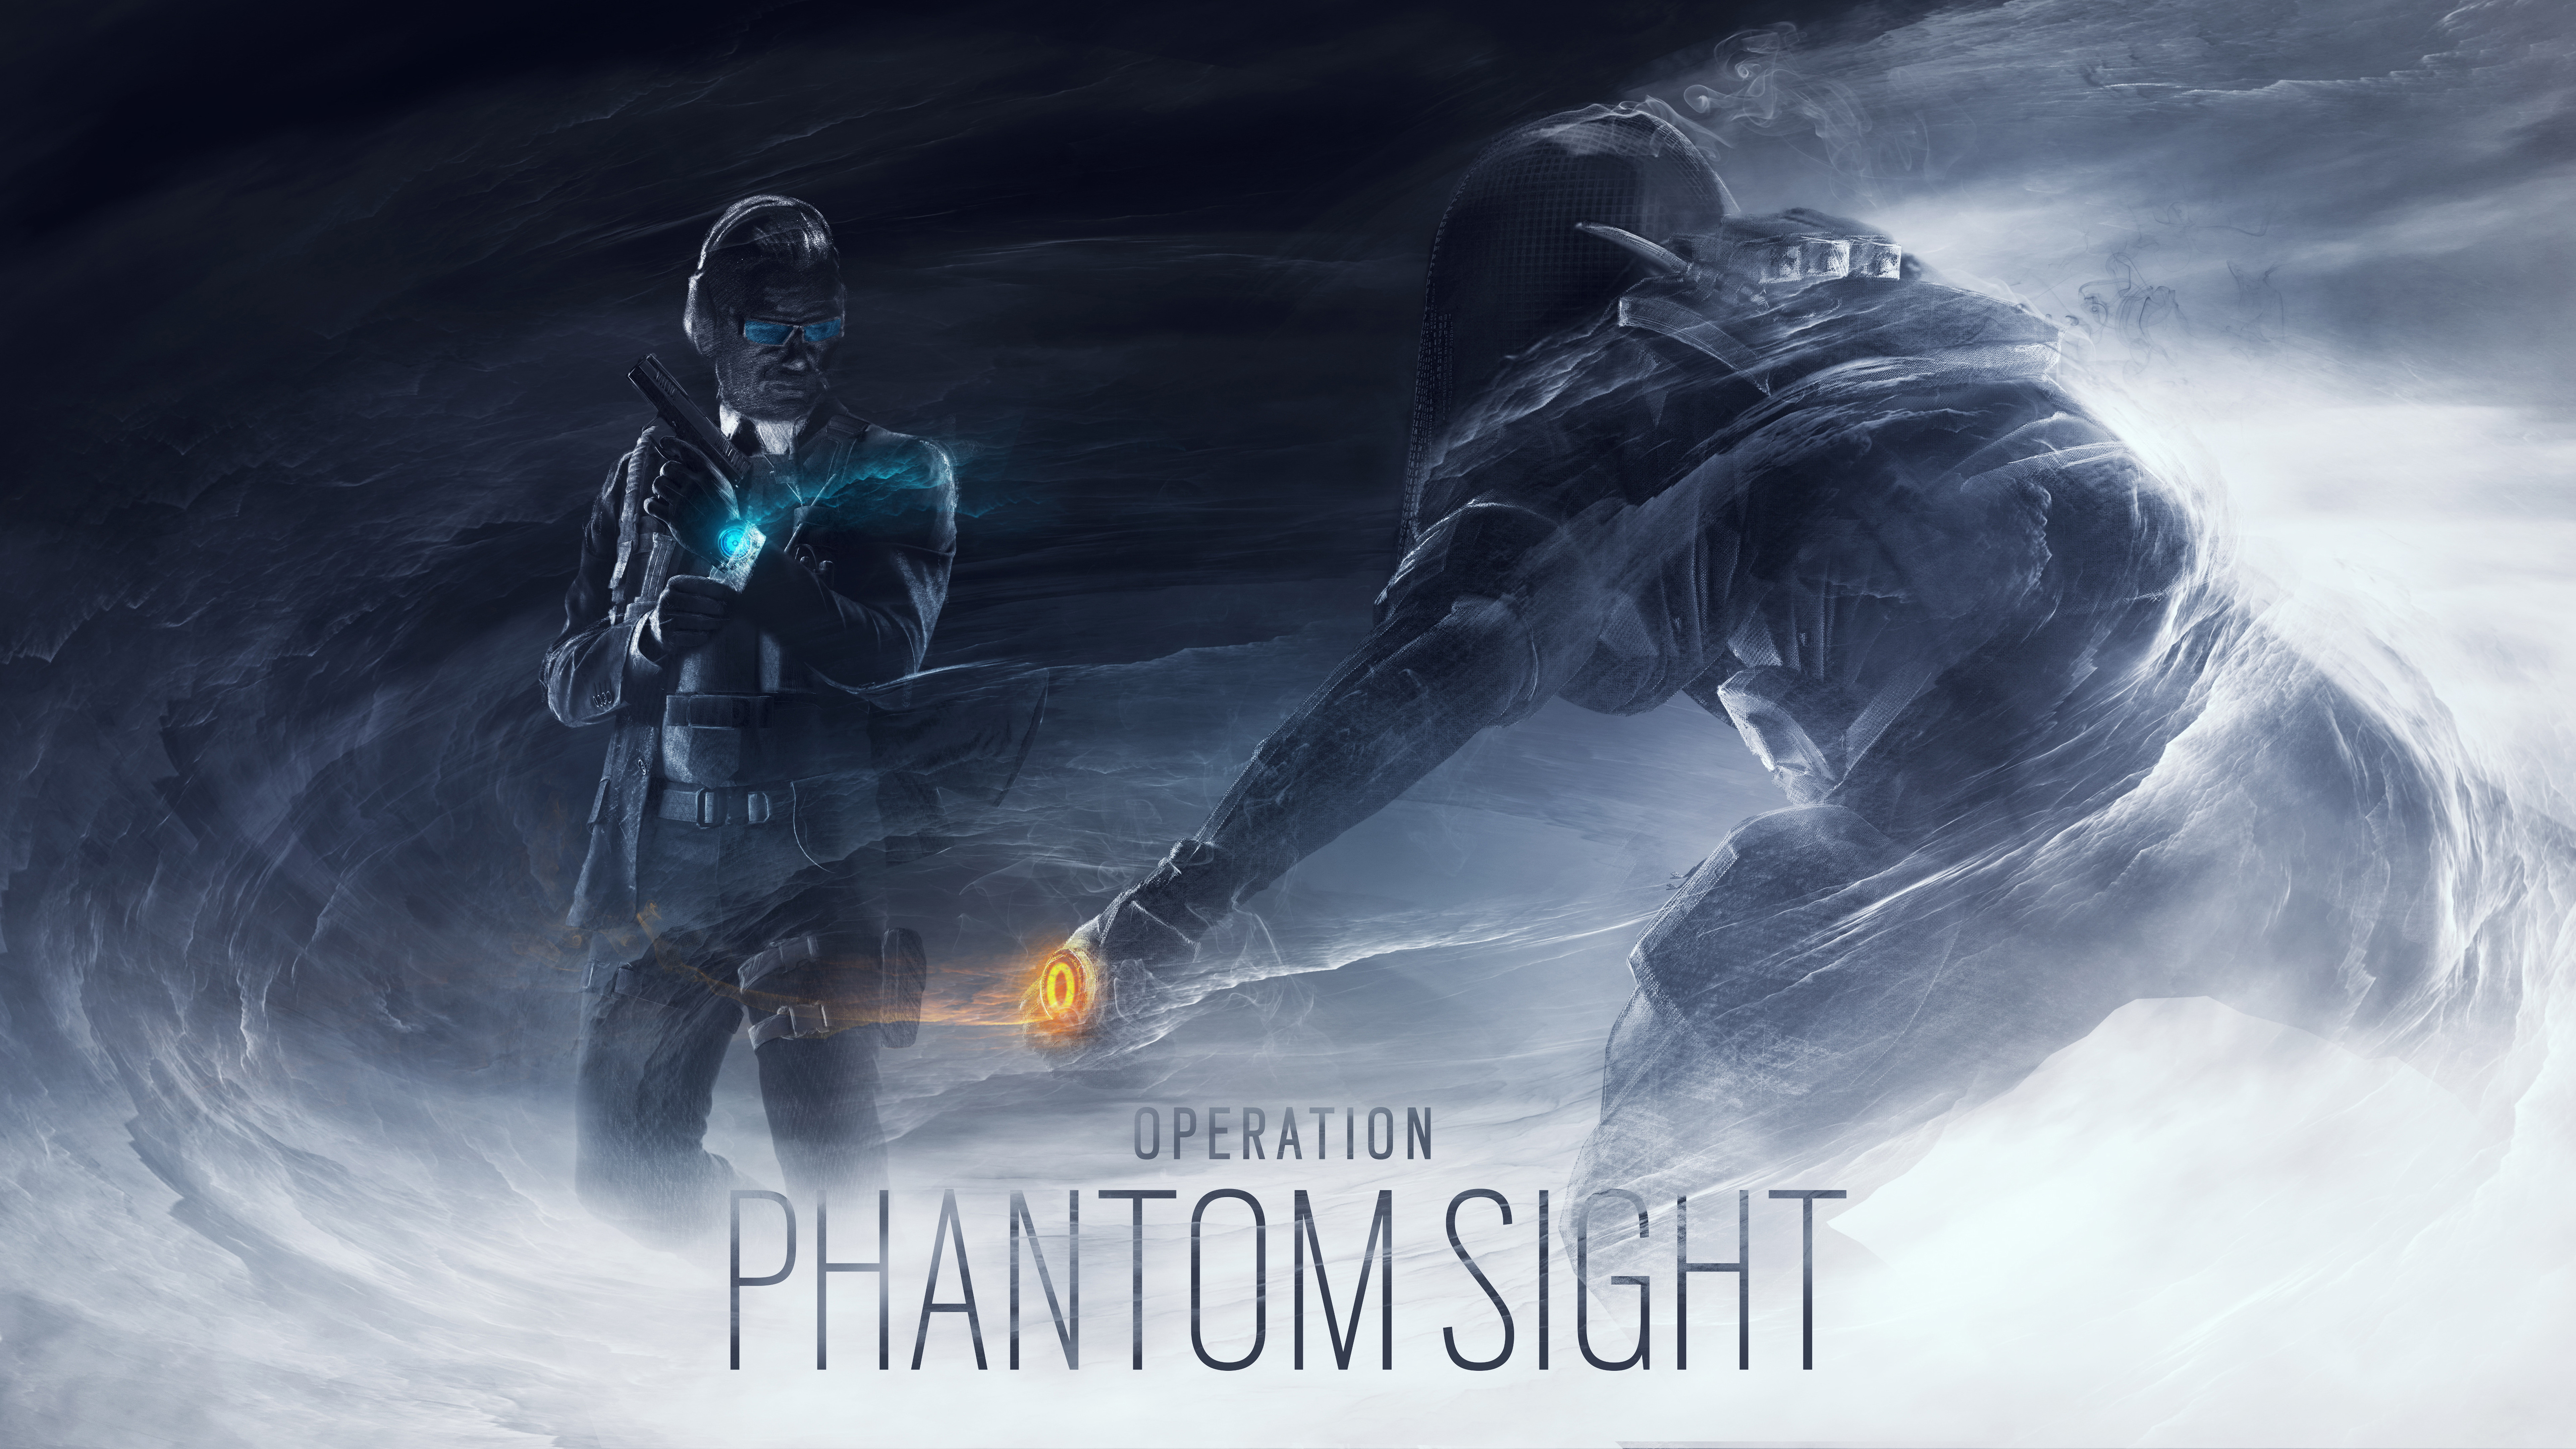 Fondos de pantalla Rainbow Six Siege Nokk and Warden Operation Phantom Sight